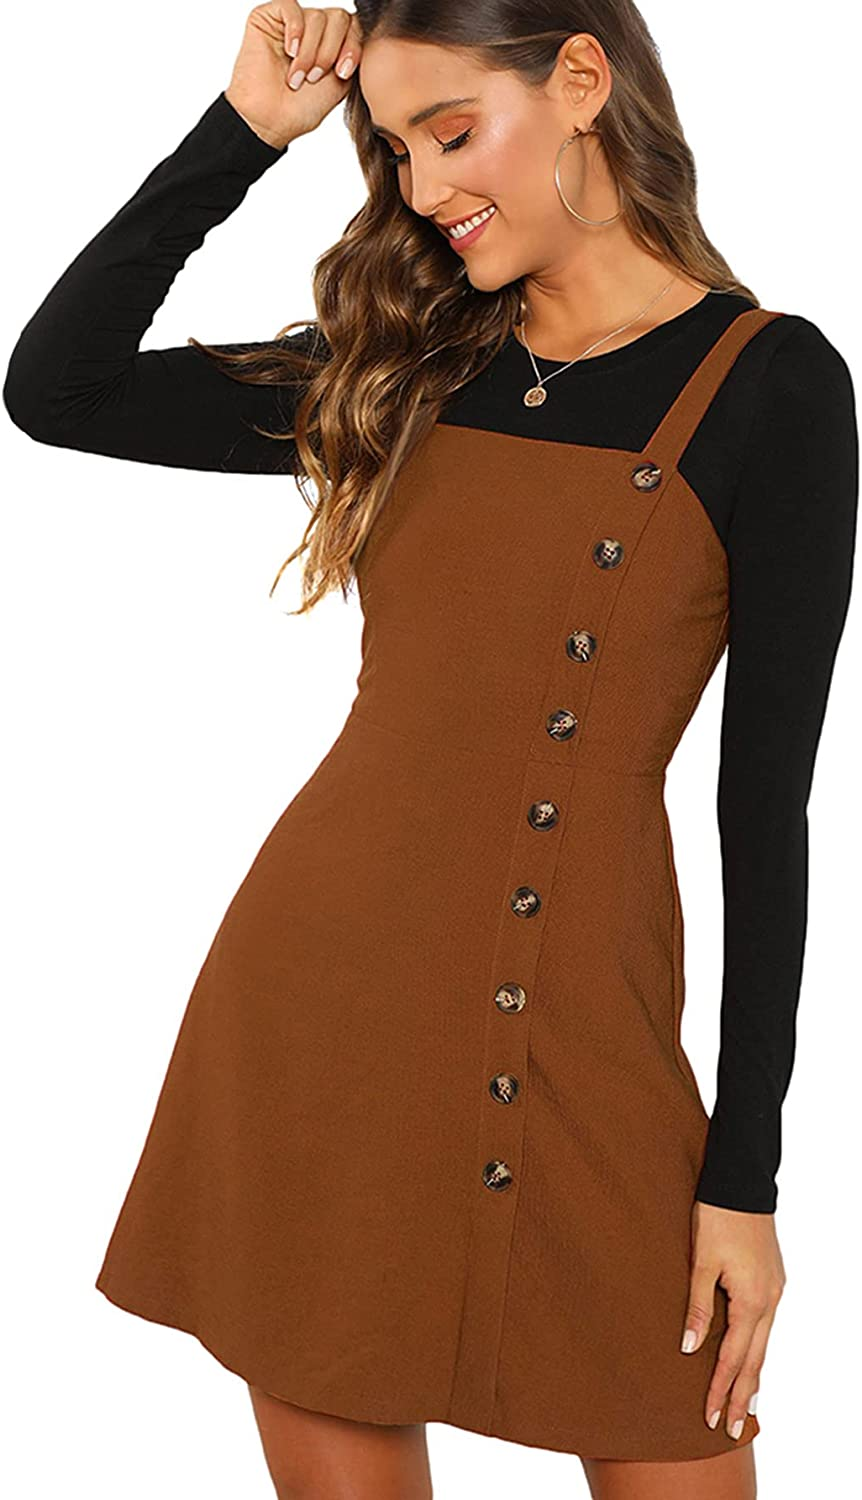 Special Campaign Verdusa Women's Button Front Pinafore Dress shop Overall